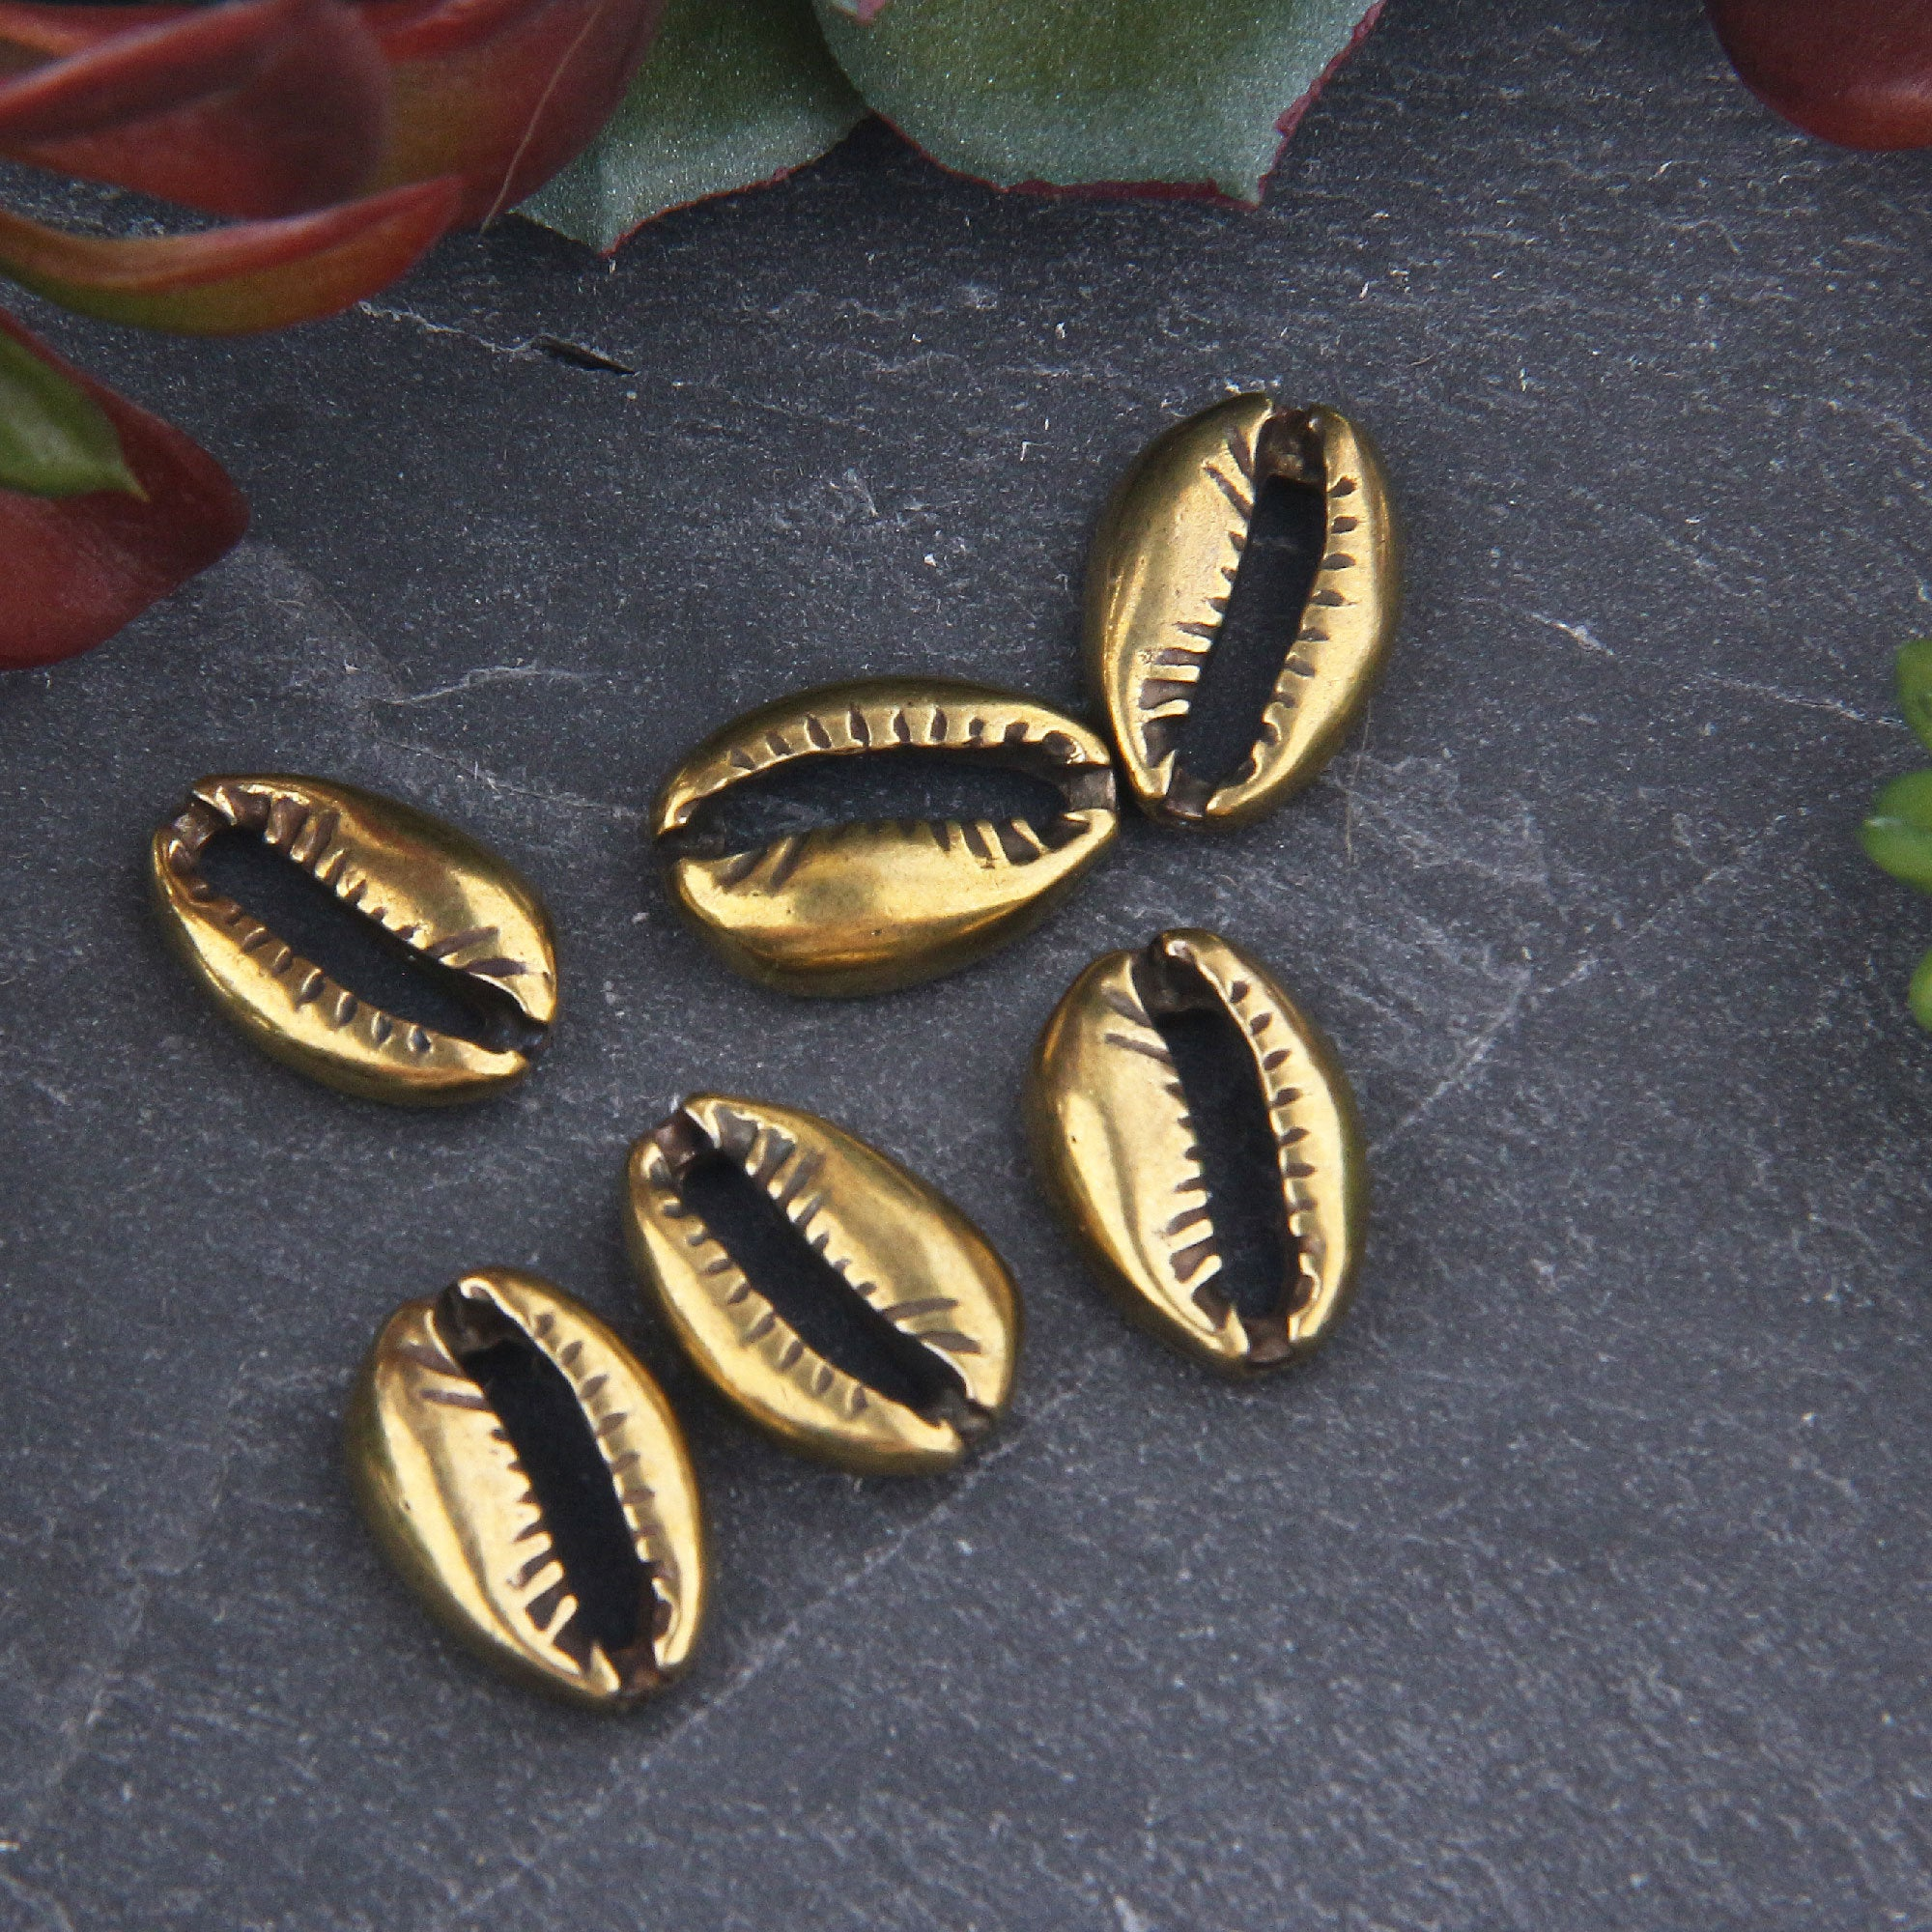 Bronze Plated Small Cowrie Sea Shell Bead Connectors, Nautical Beads, Seashell Charms, Jewelry Supplies, 6 pieces // ABC-044